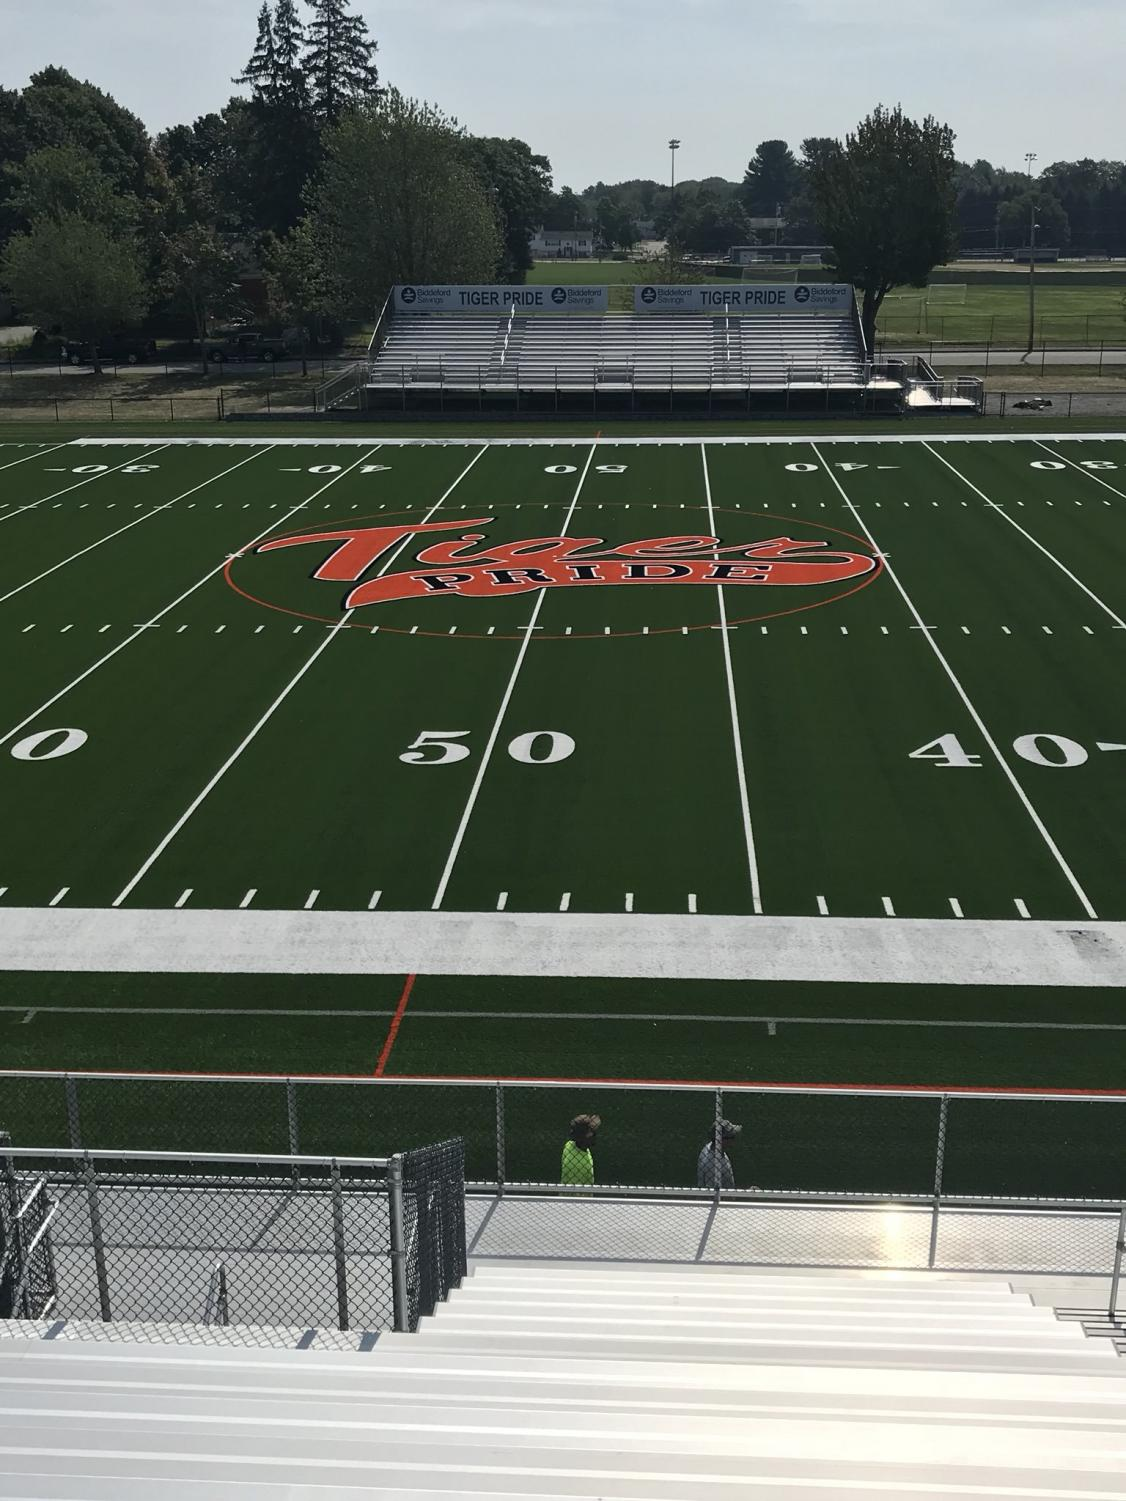 New logo on the turf. Photo courtesy of Dennis Walton.